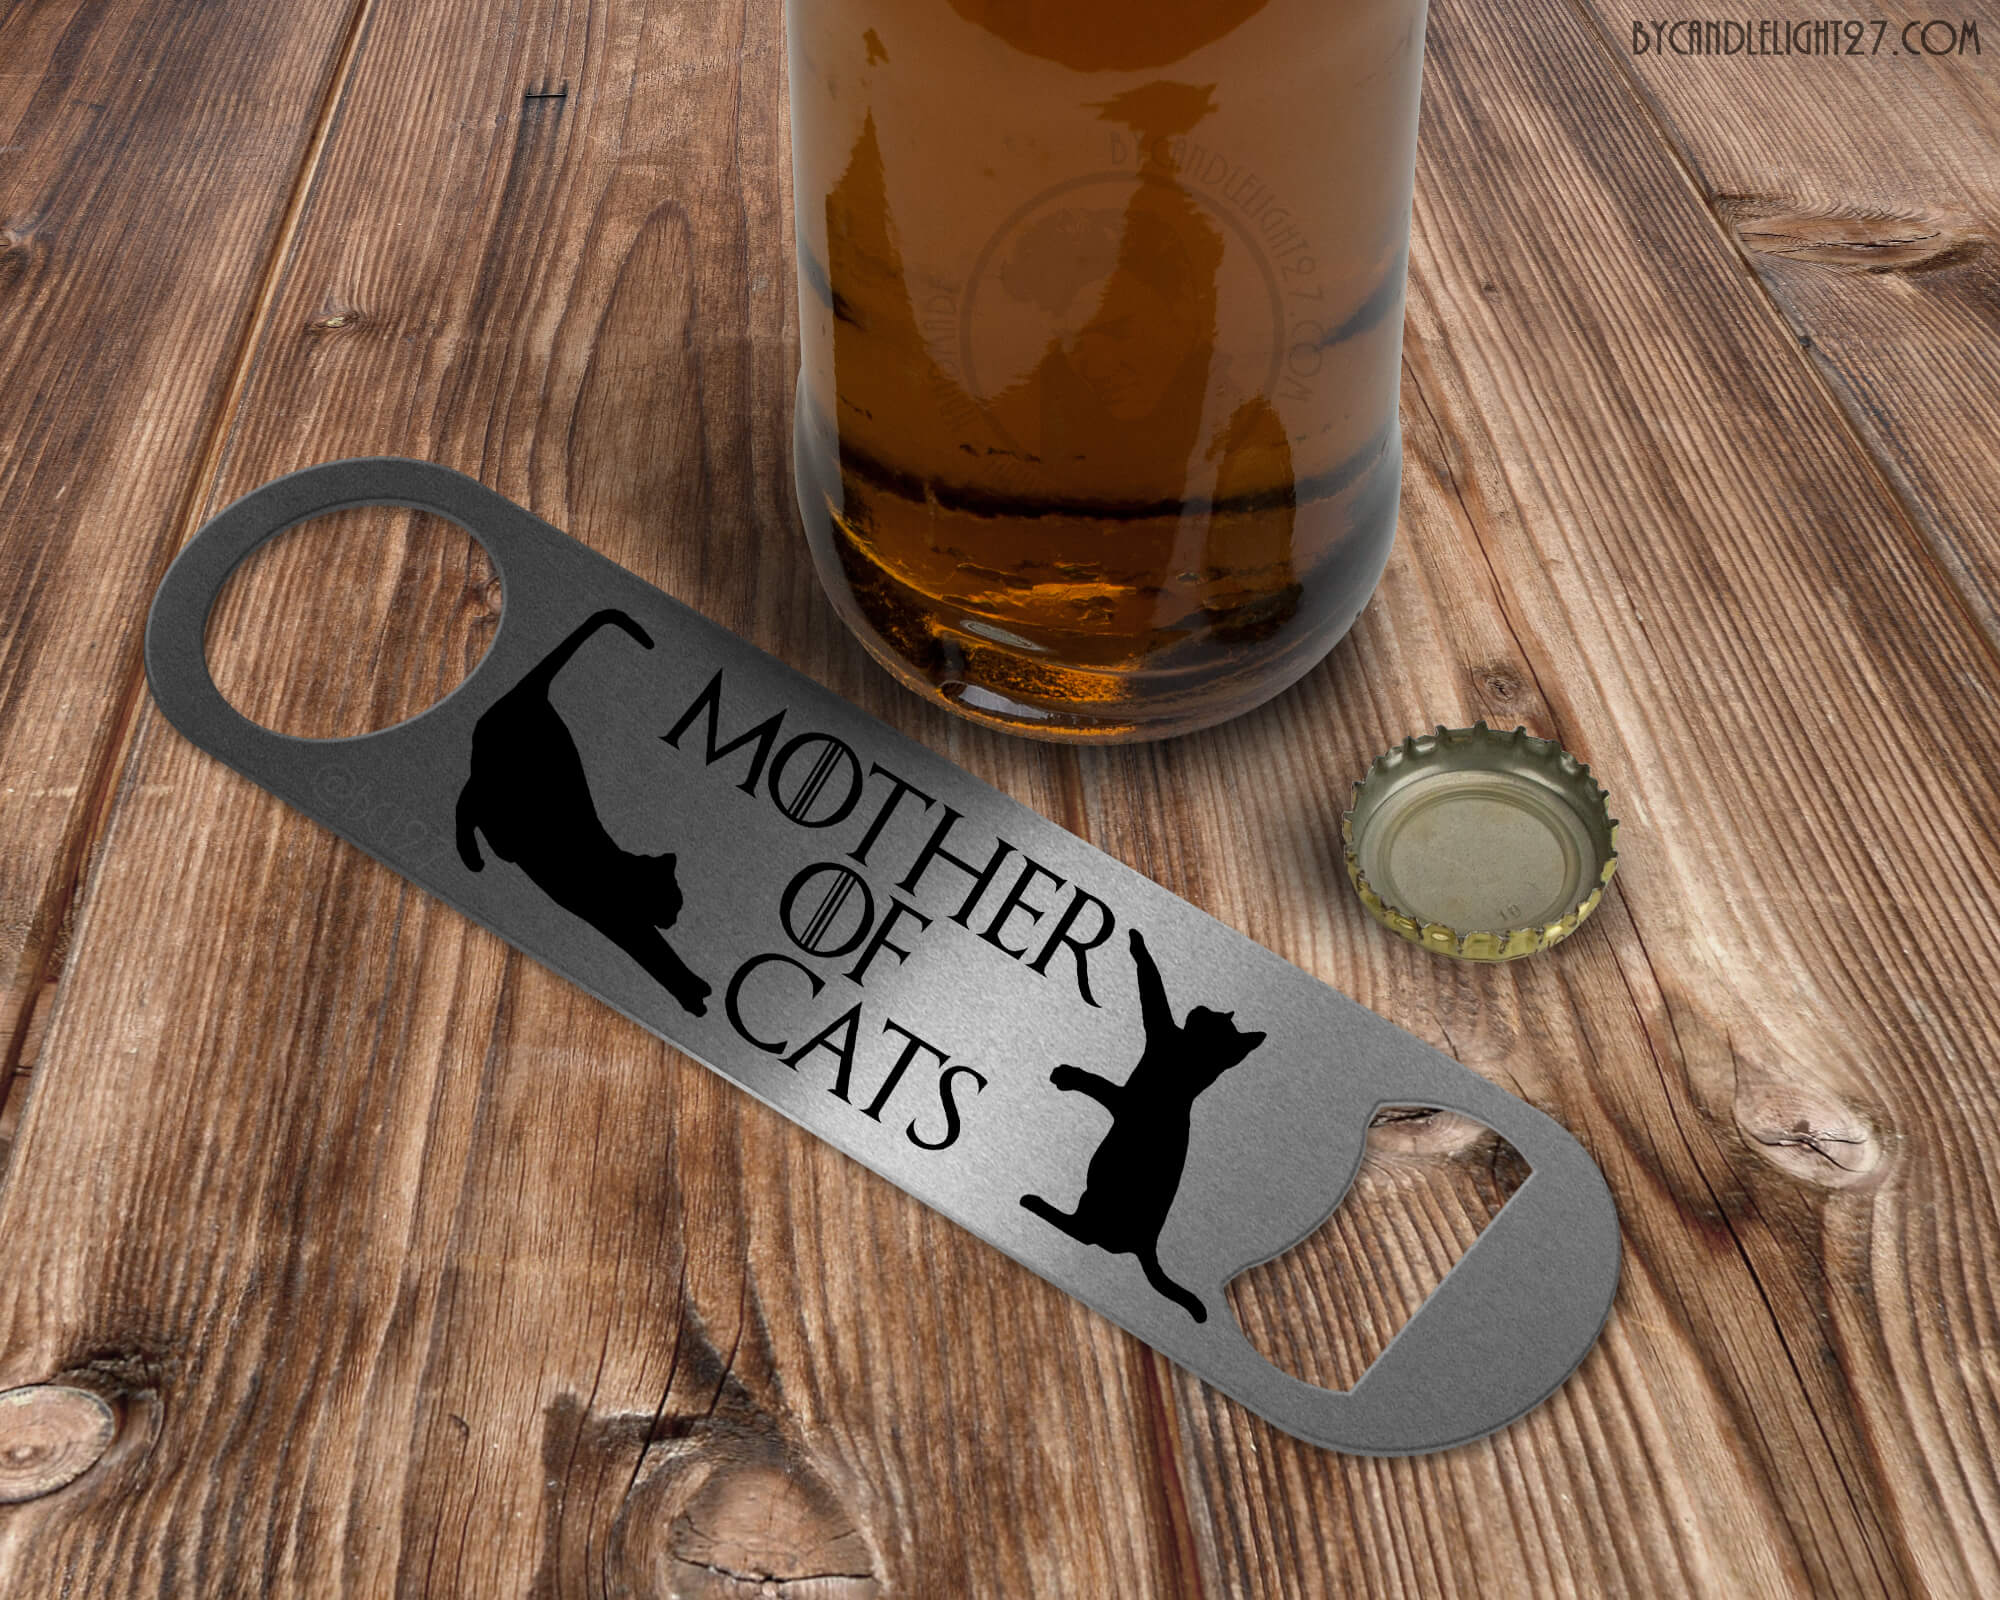 Mother Of Cats - Game of Thrones Bar Blade - ByCandlelight27